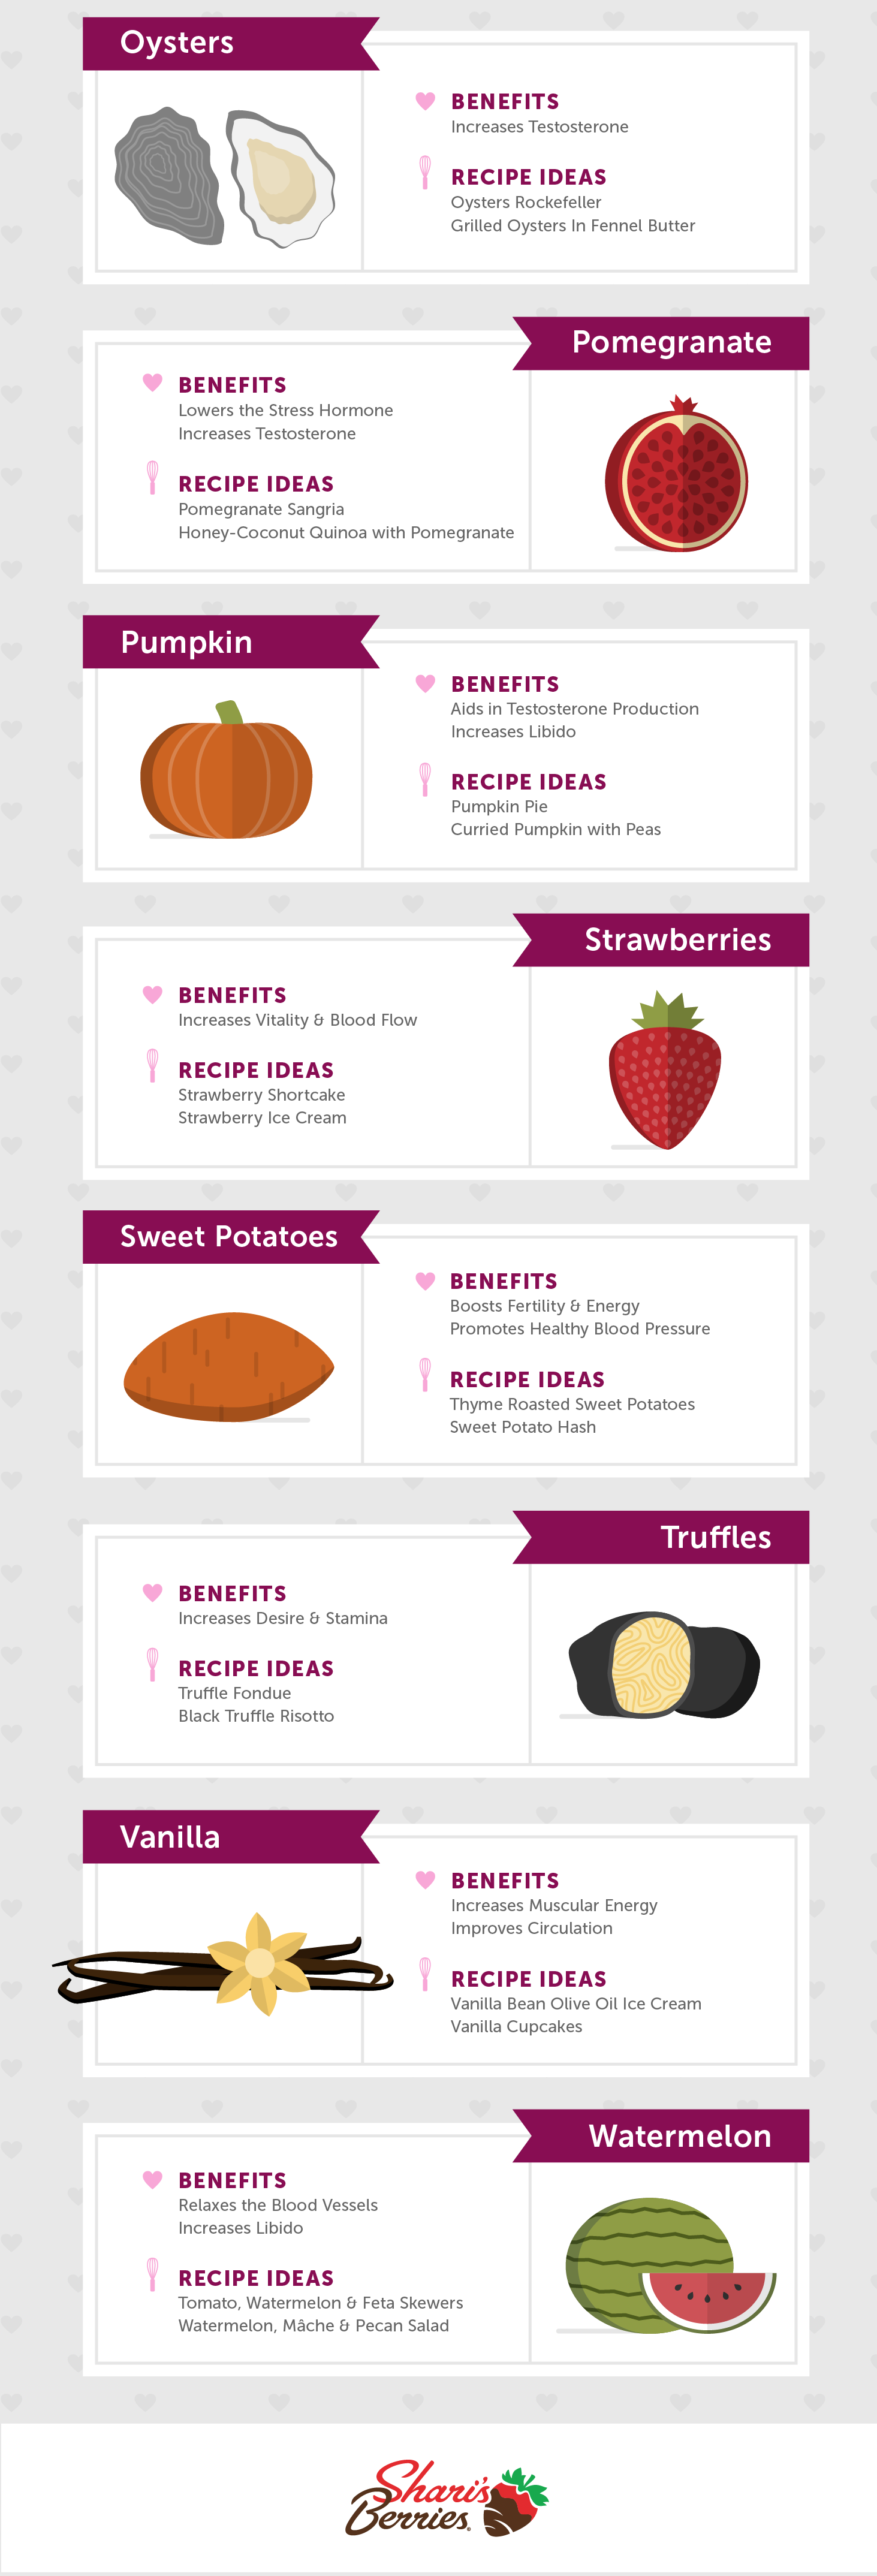 26 Aphrodisiac Foods To Get You In The Mood - The Dating